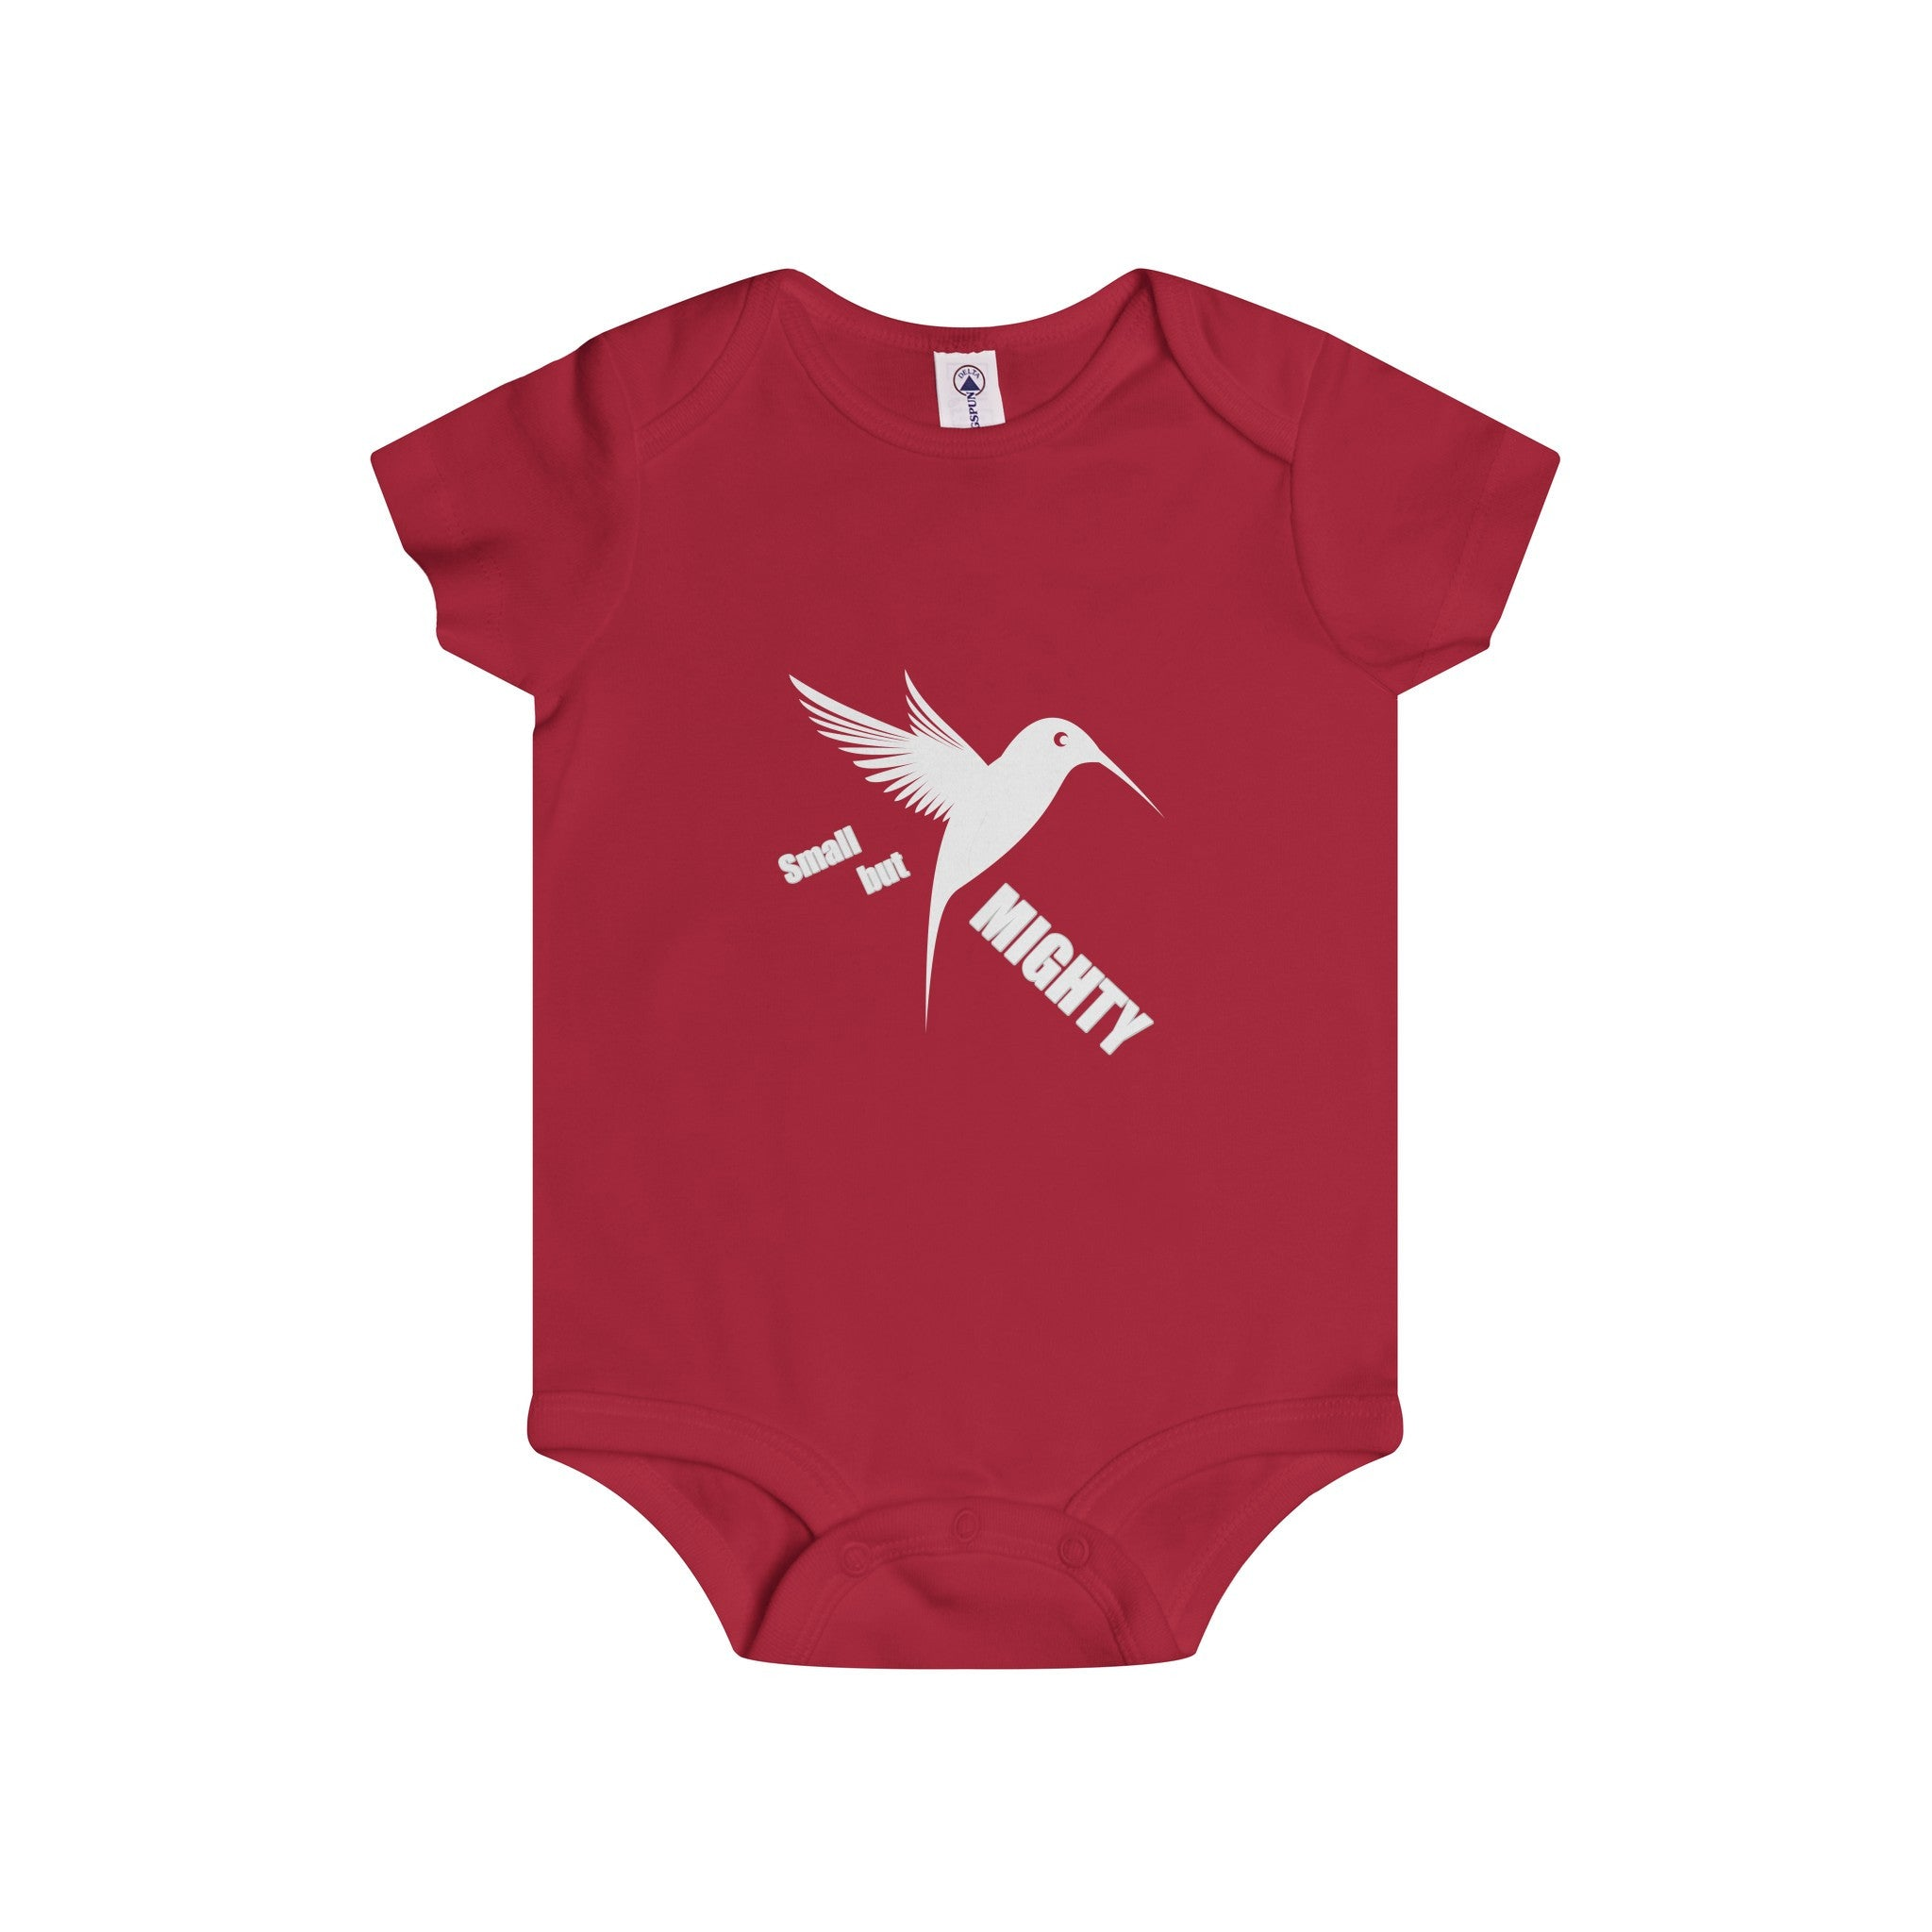 Small But Mighty White Design Onesie (4 colors available)